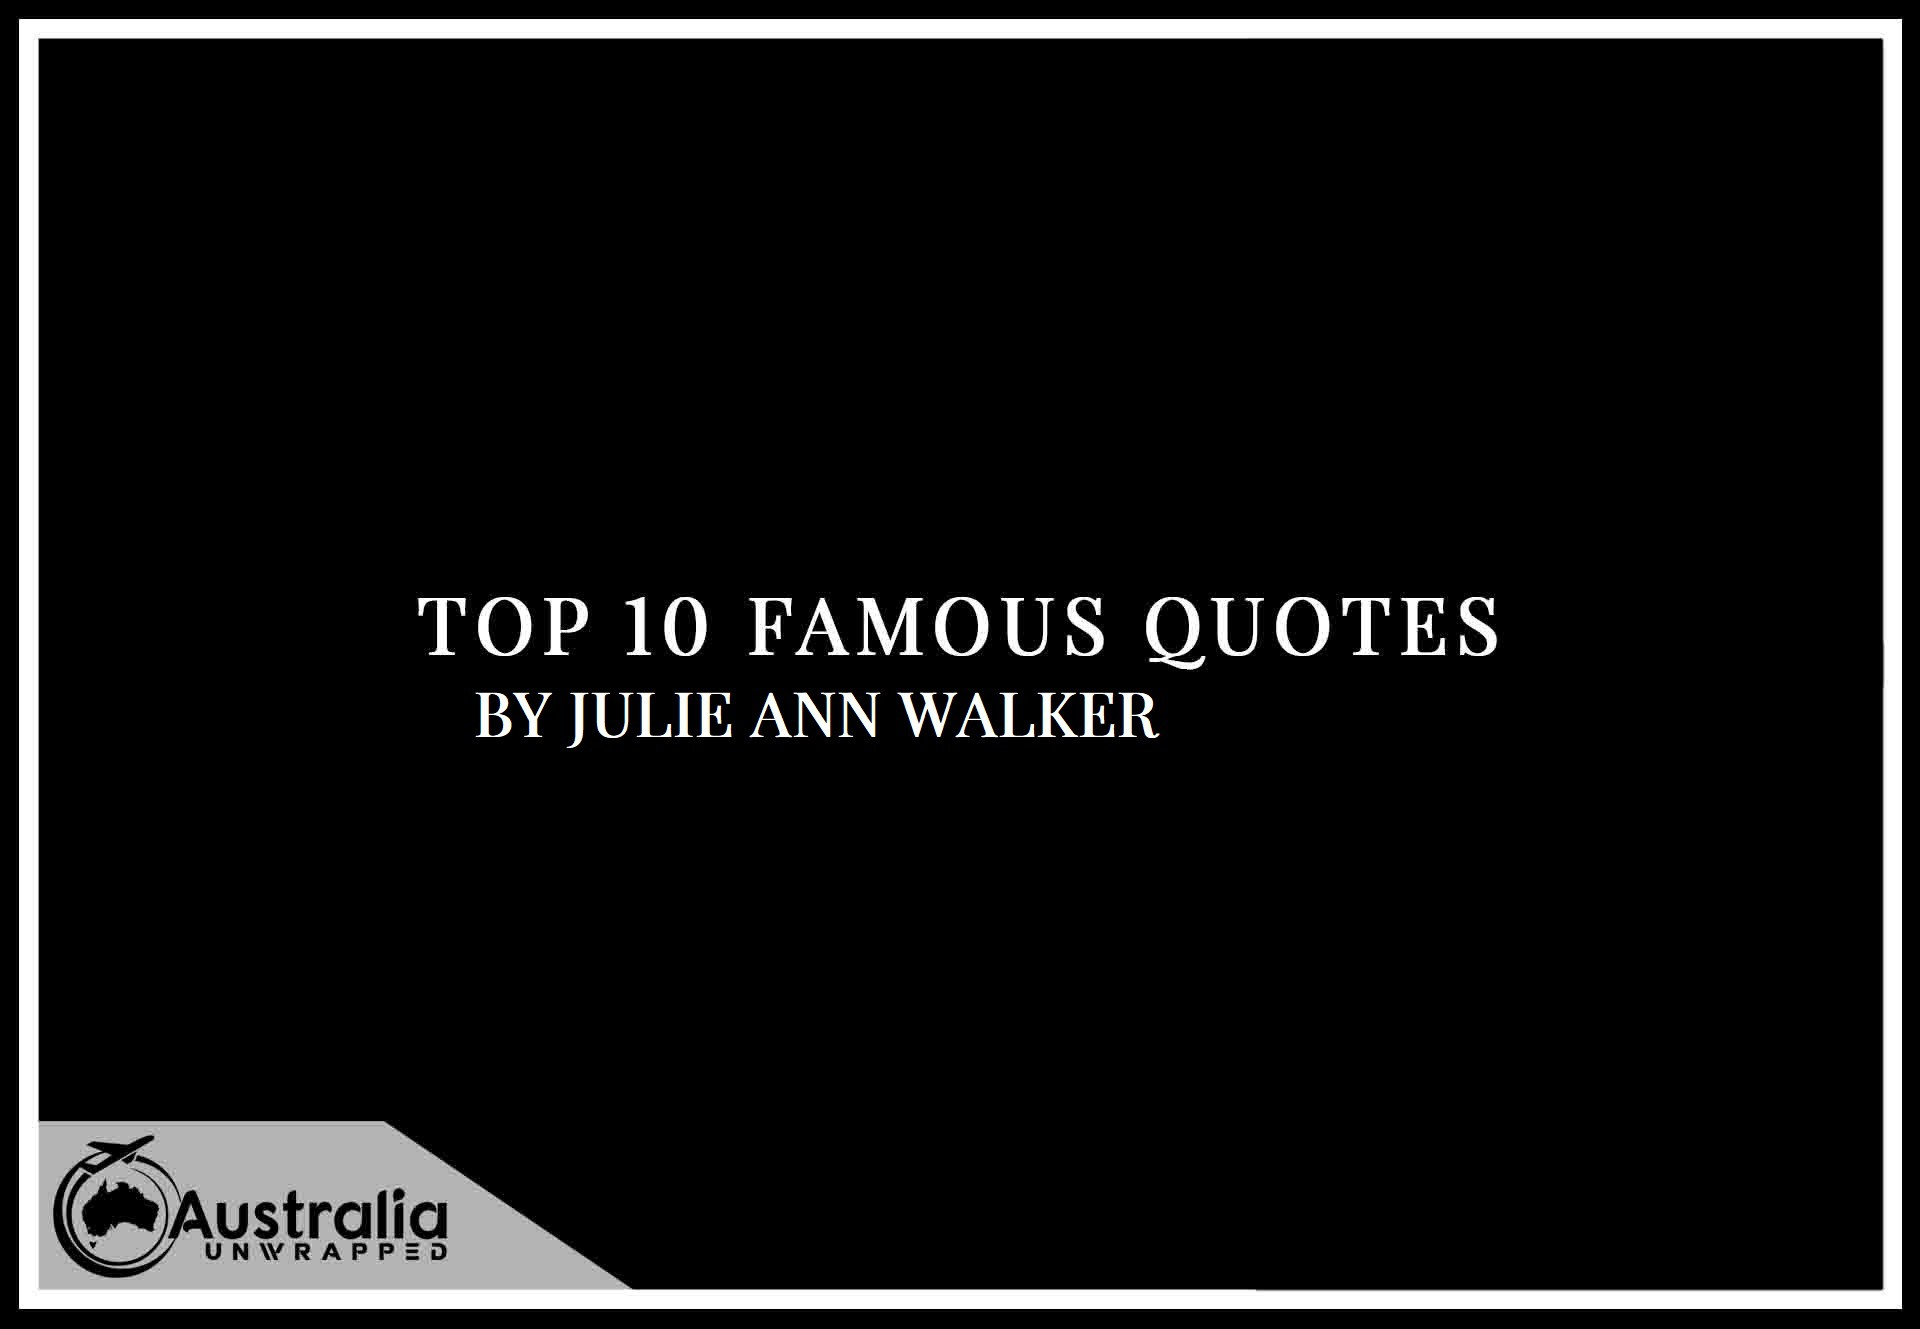 Top 10 Famous Quotes by Author Julie Ann Walker